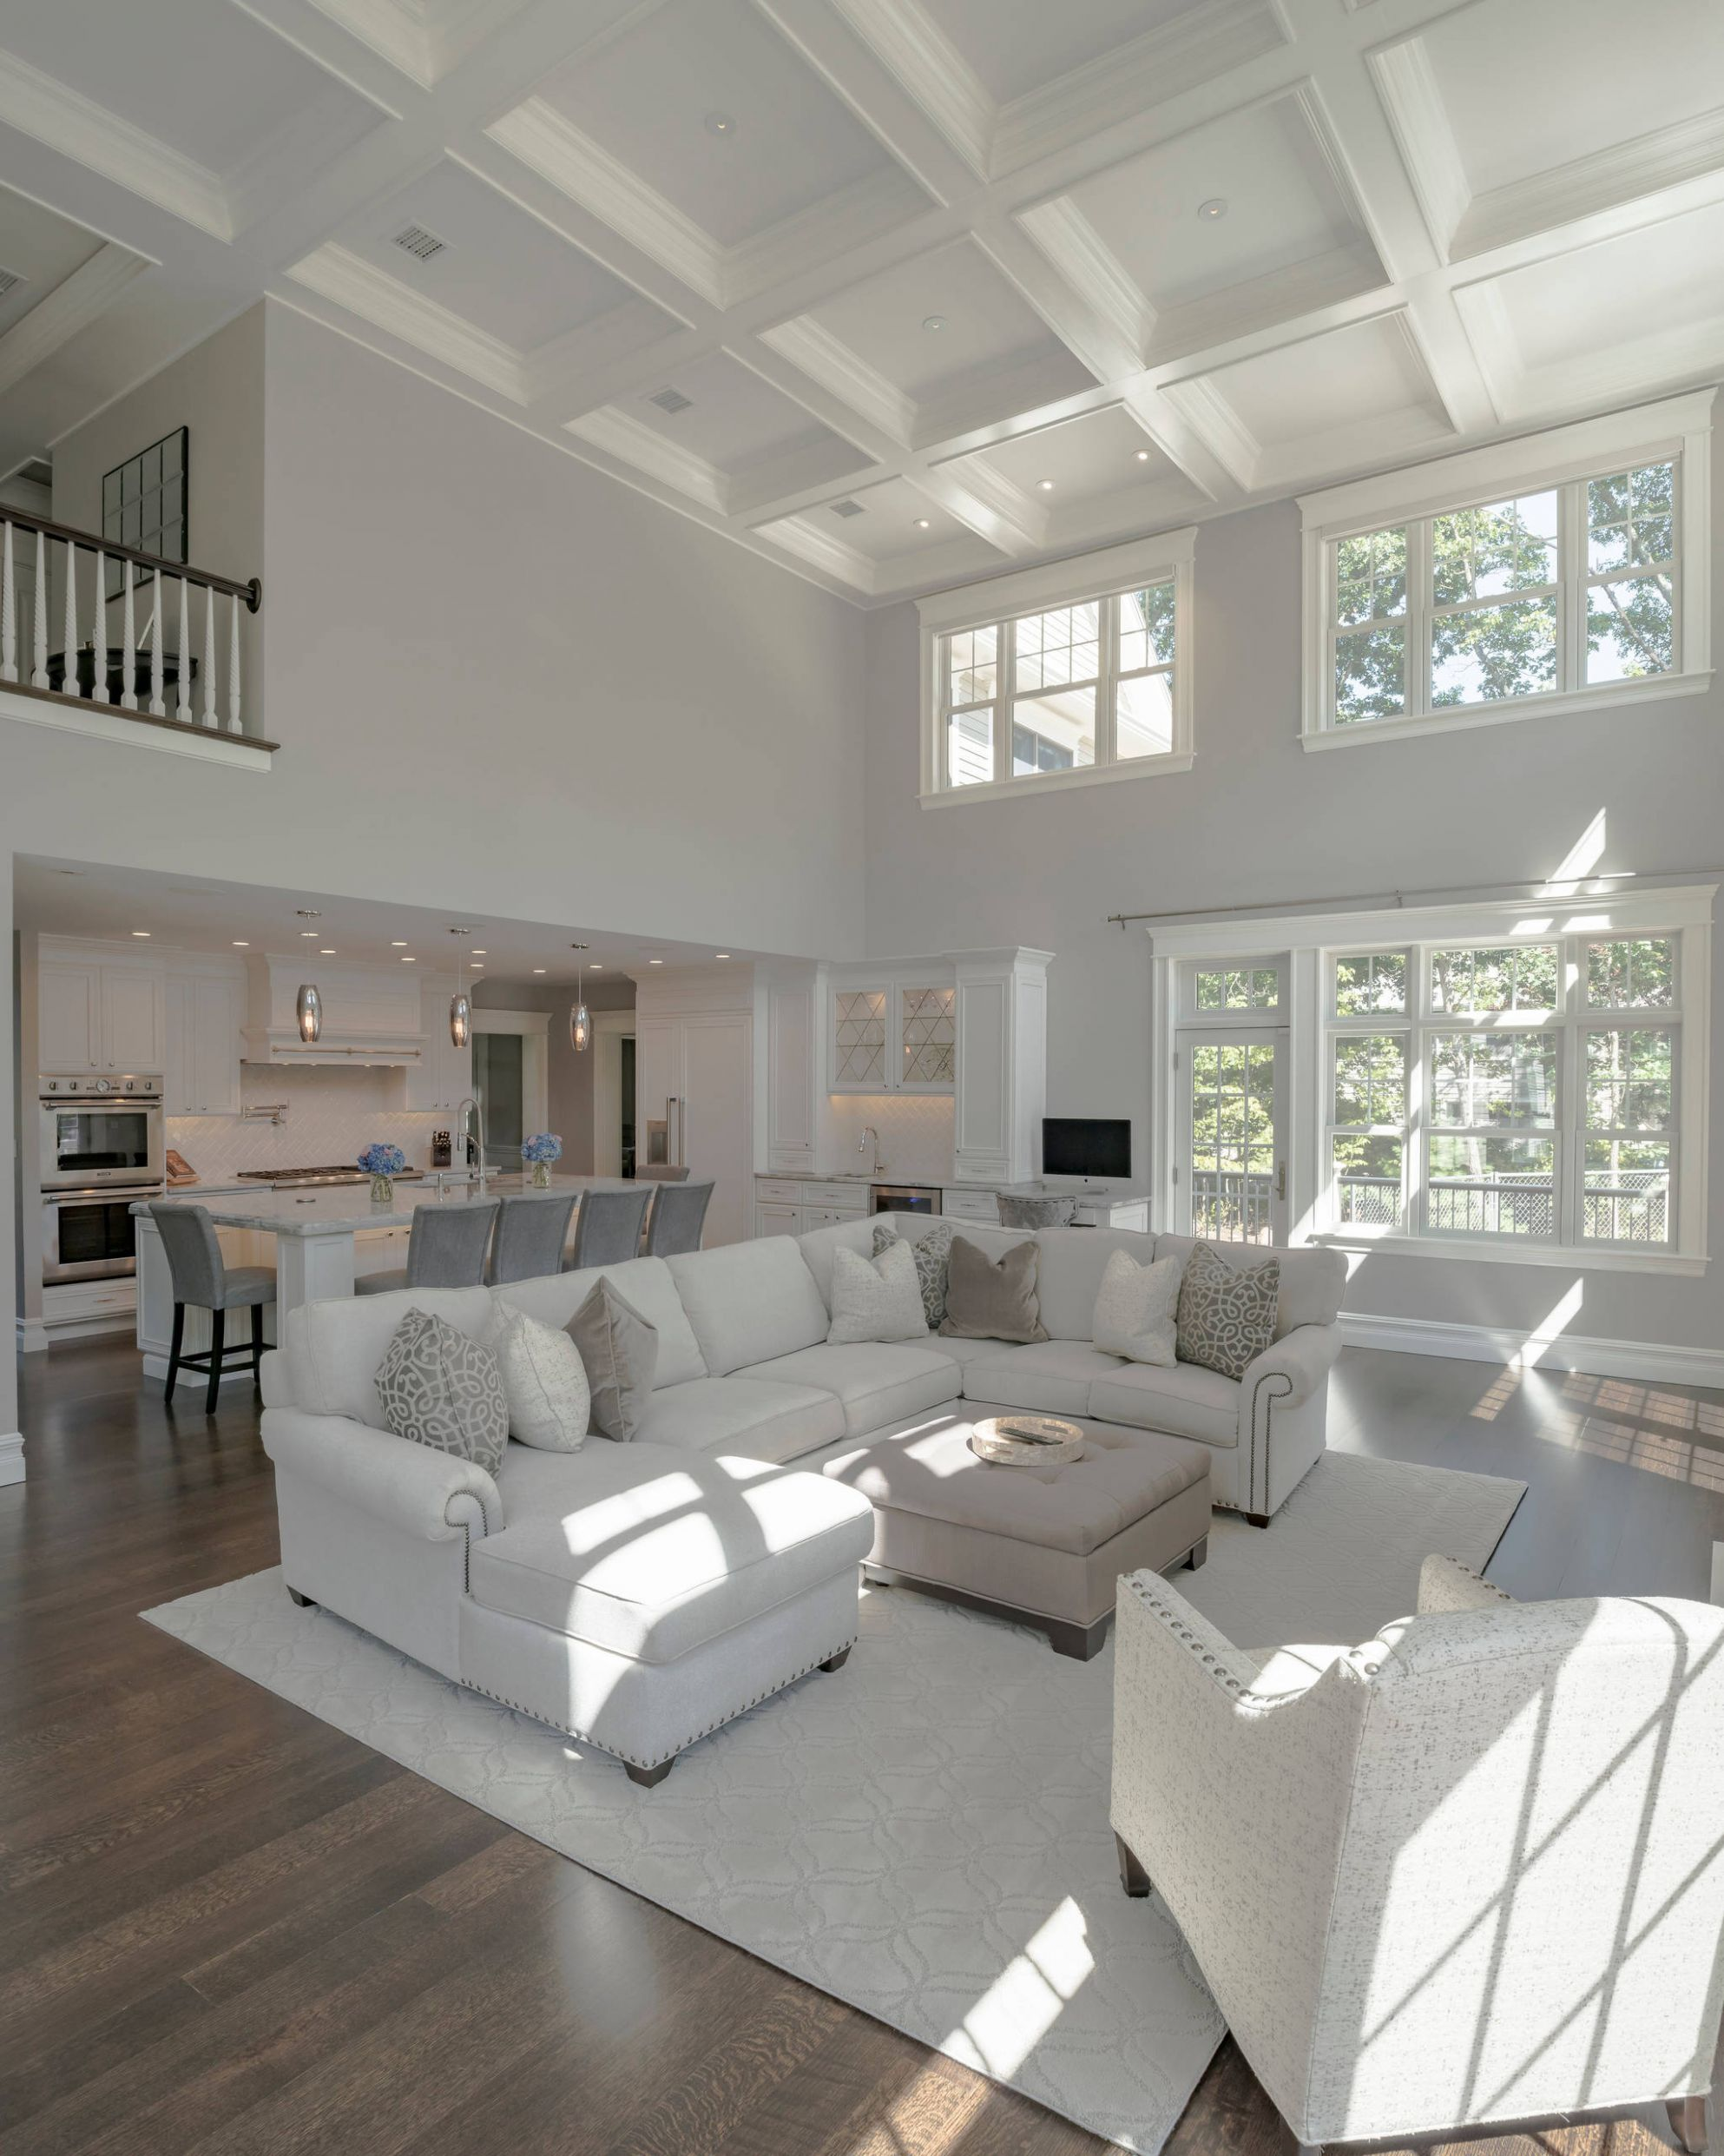 8 Life Changing Modern Living Room Remodel Ideas | Houzz